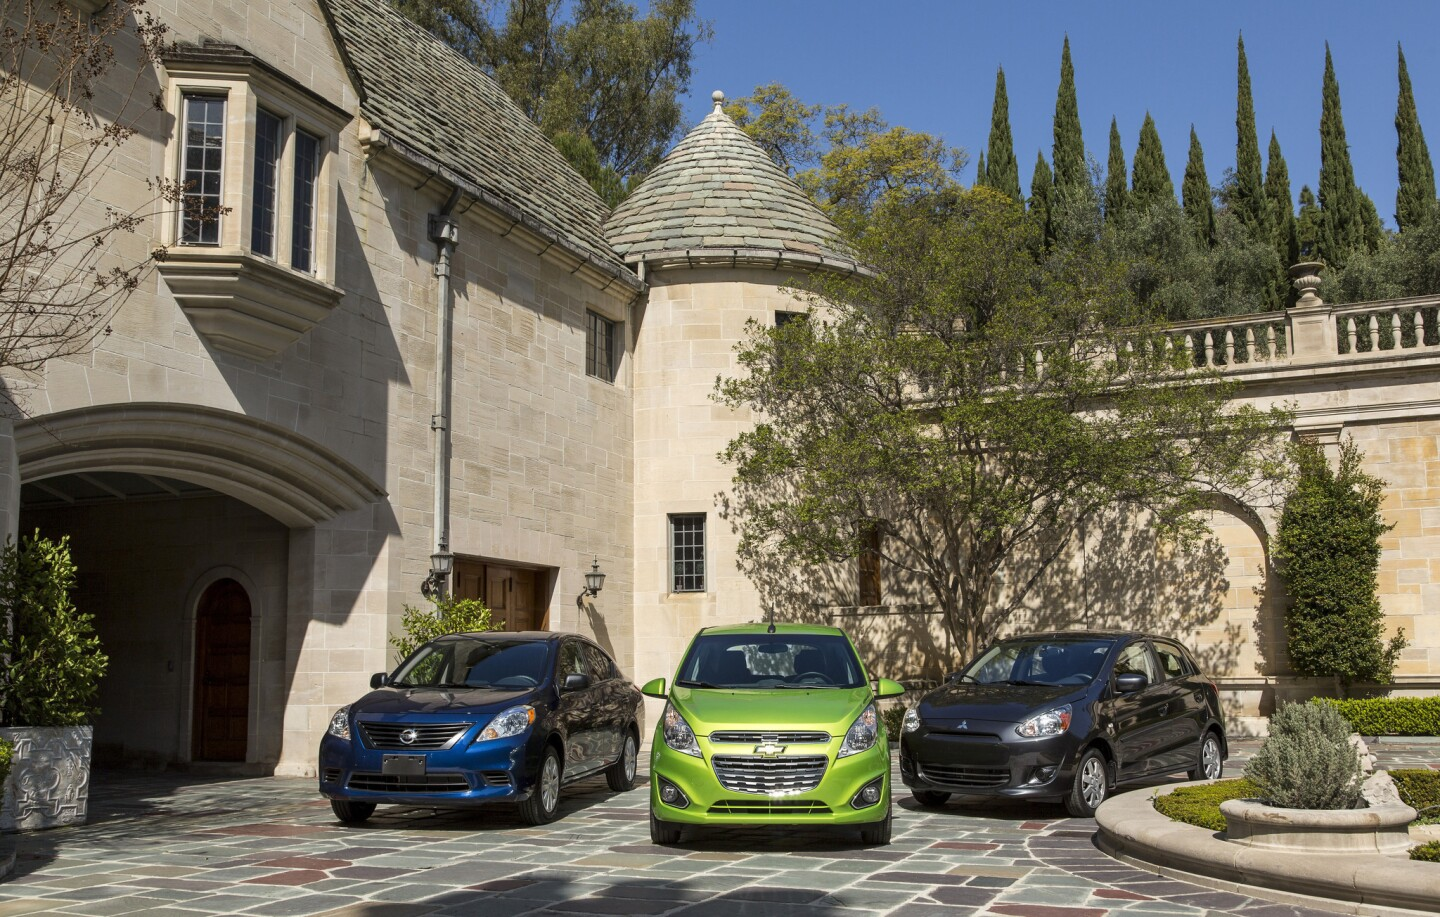 The Nissan Versa, left, Chevy Spark and Mitsubishi Mirage at the Greystone Mansion in Beverly Hills. These are the cars for people who want nothing more than the cheapest possible transportation, who view driving as a chore.